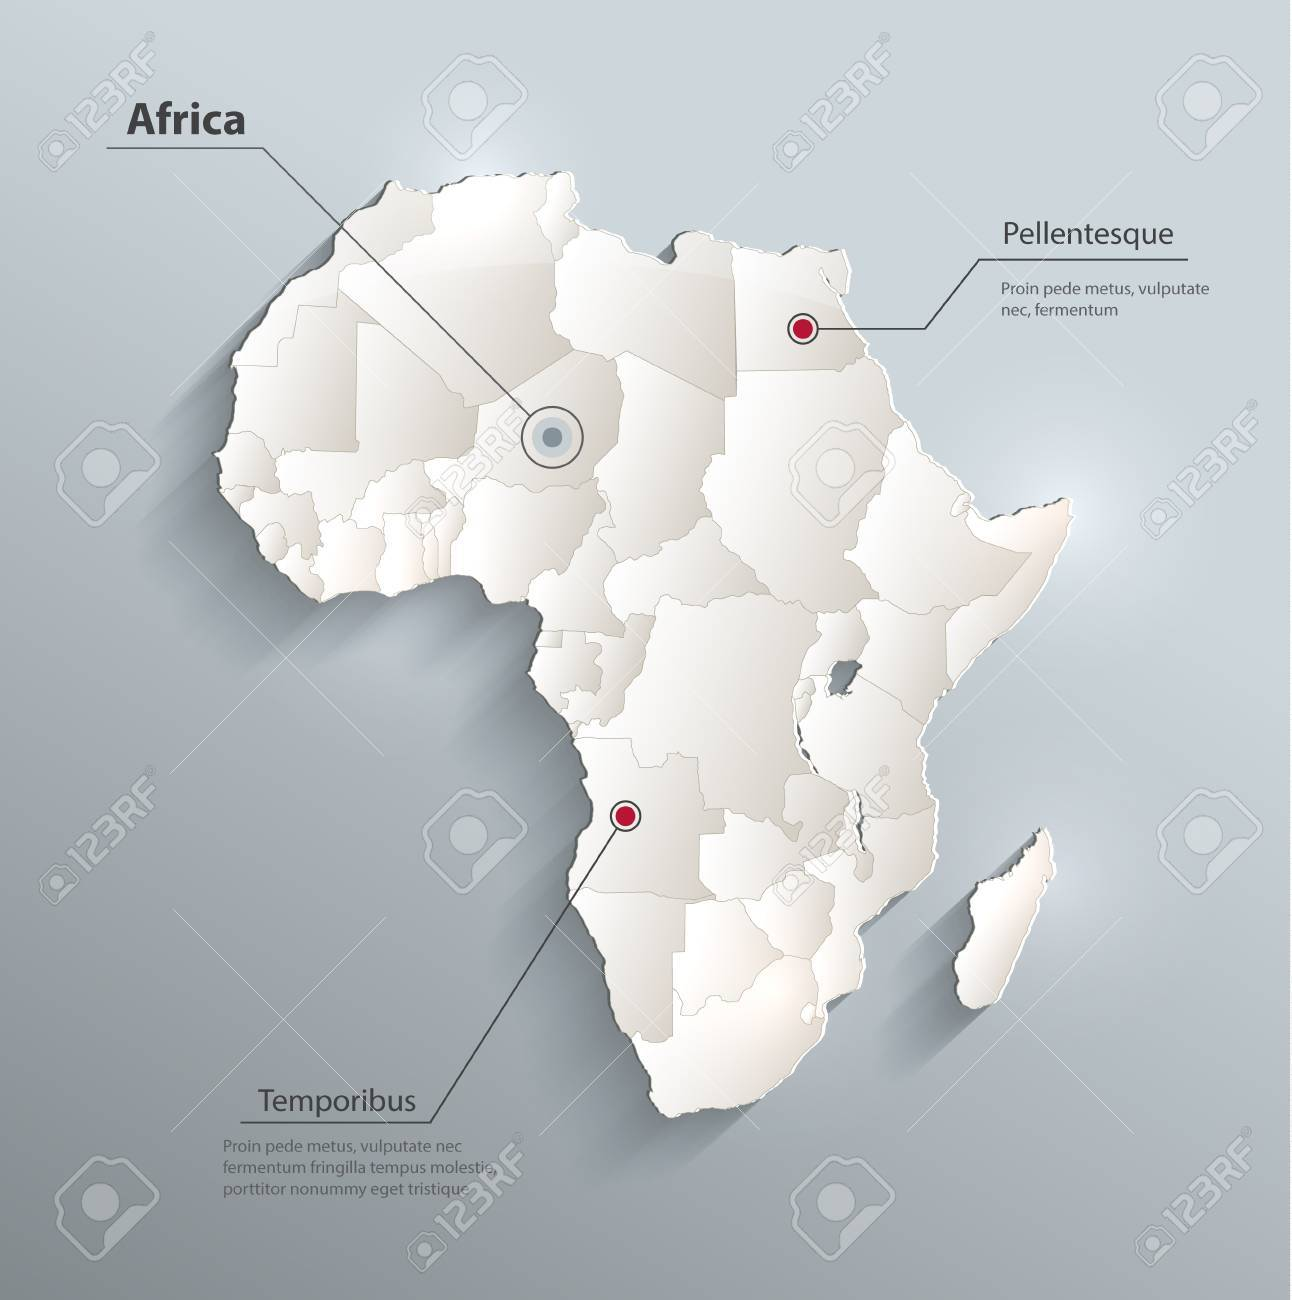 Africa political map 3d royalty free cliparts vectors and stock africa political map 3d stock vector 60232371 ccuart Gallery